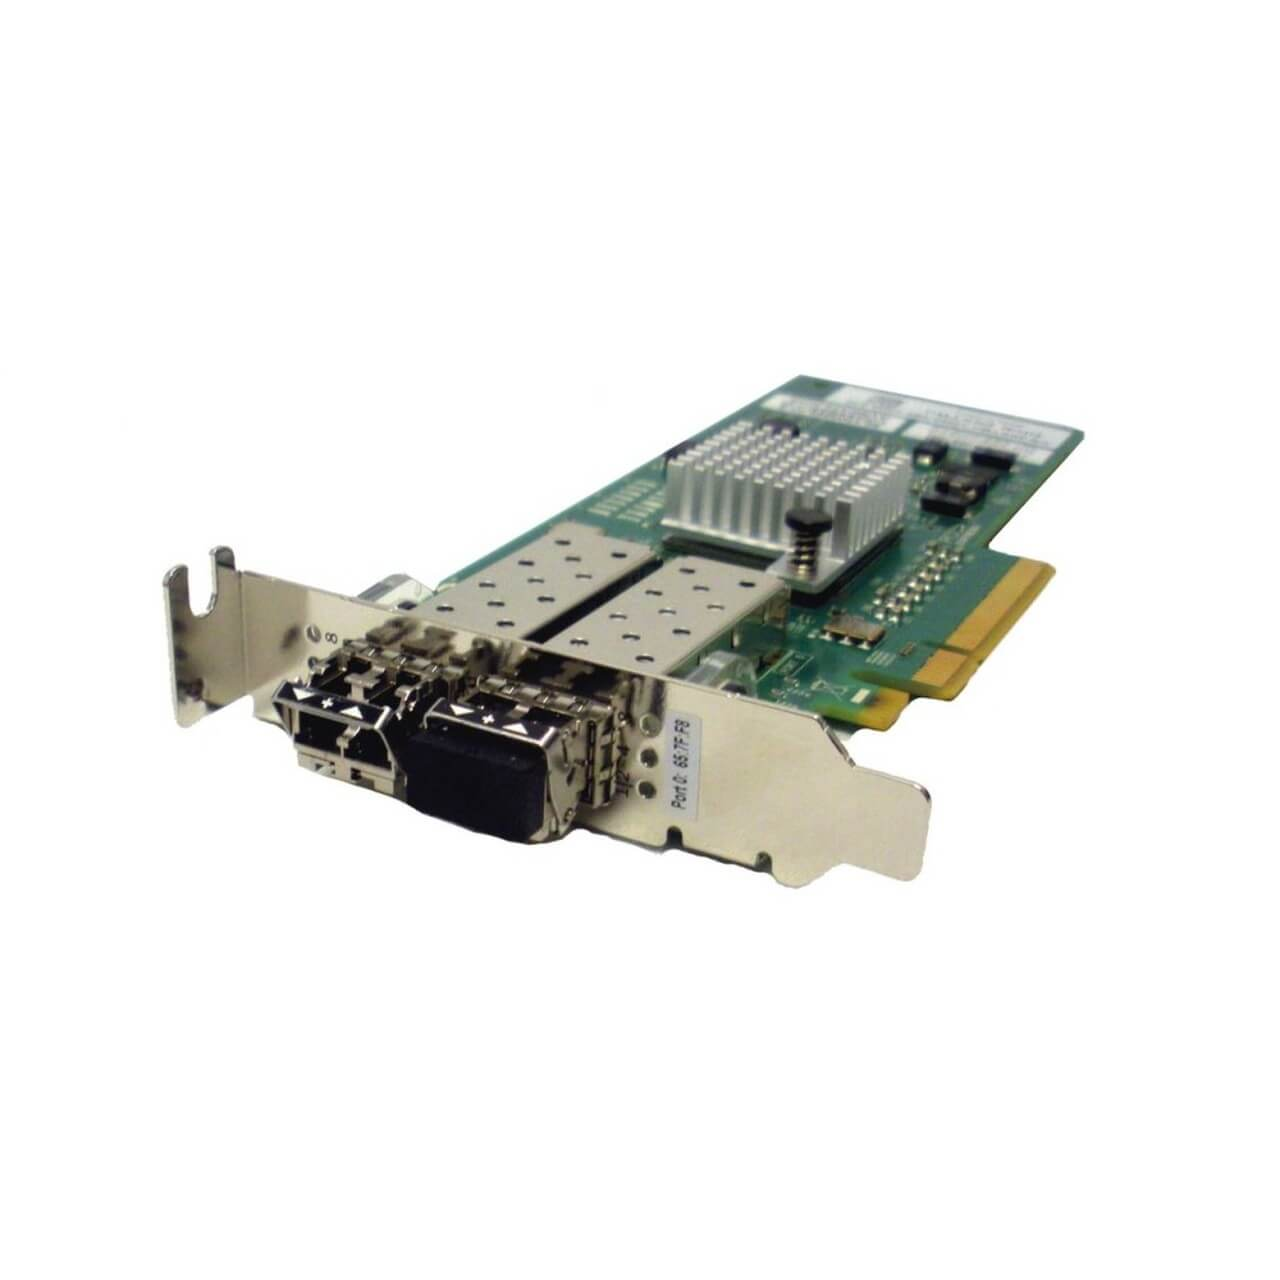 Buy & save on refurbished Brocade adapters for computer servers from your trusted partners at Flagship Technologies.